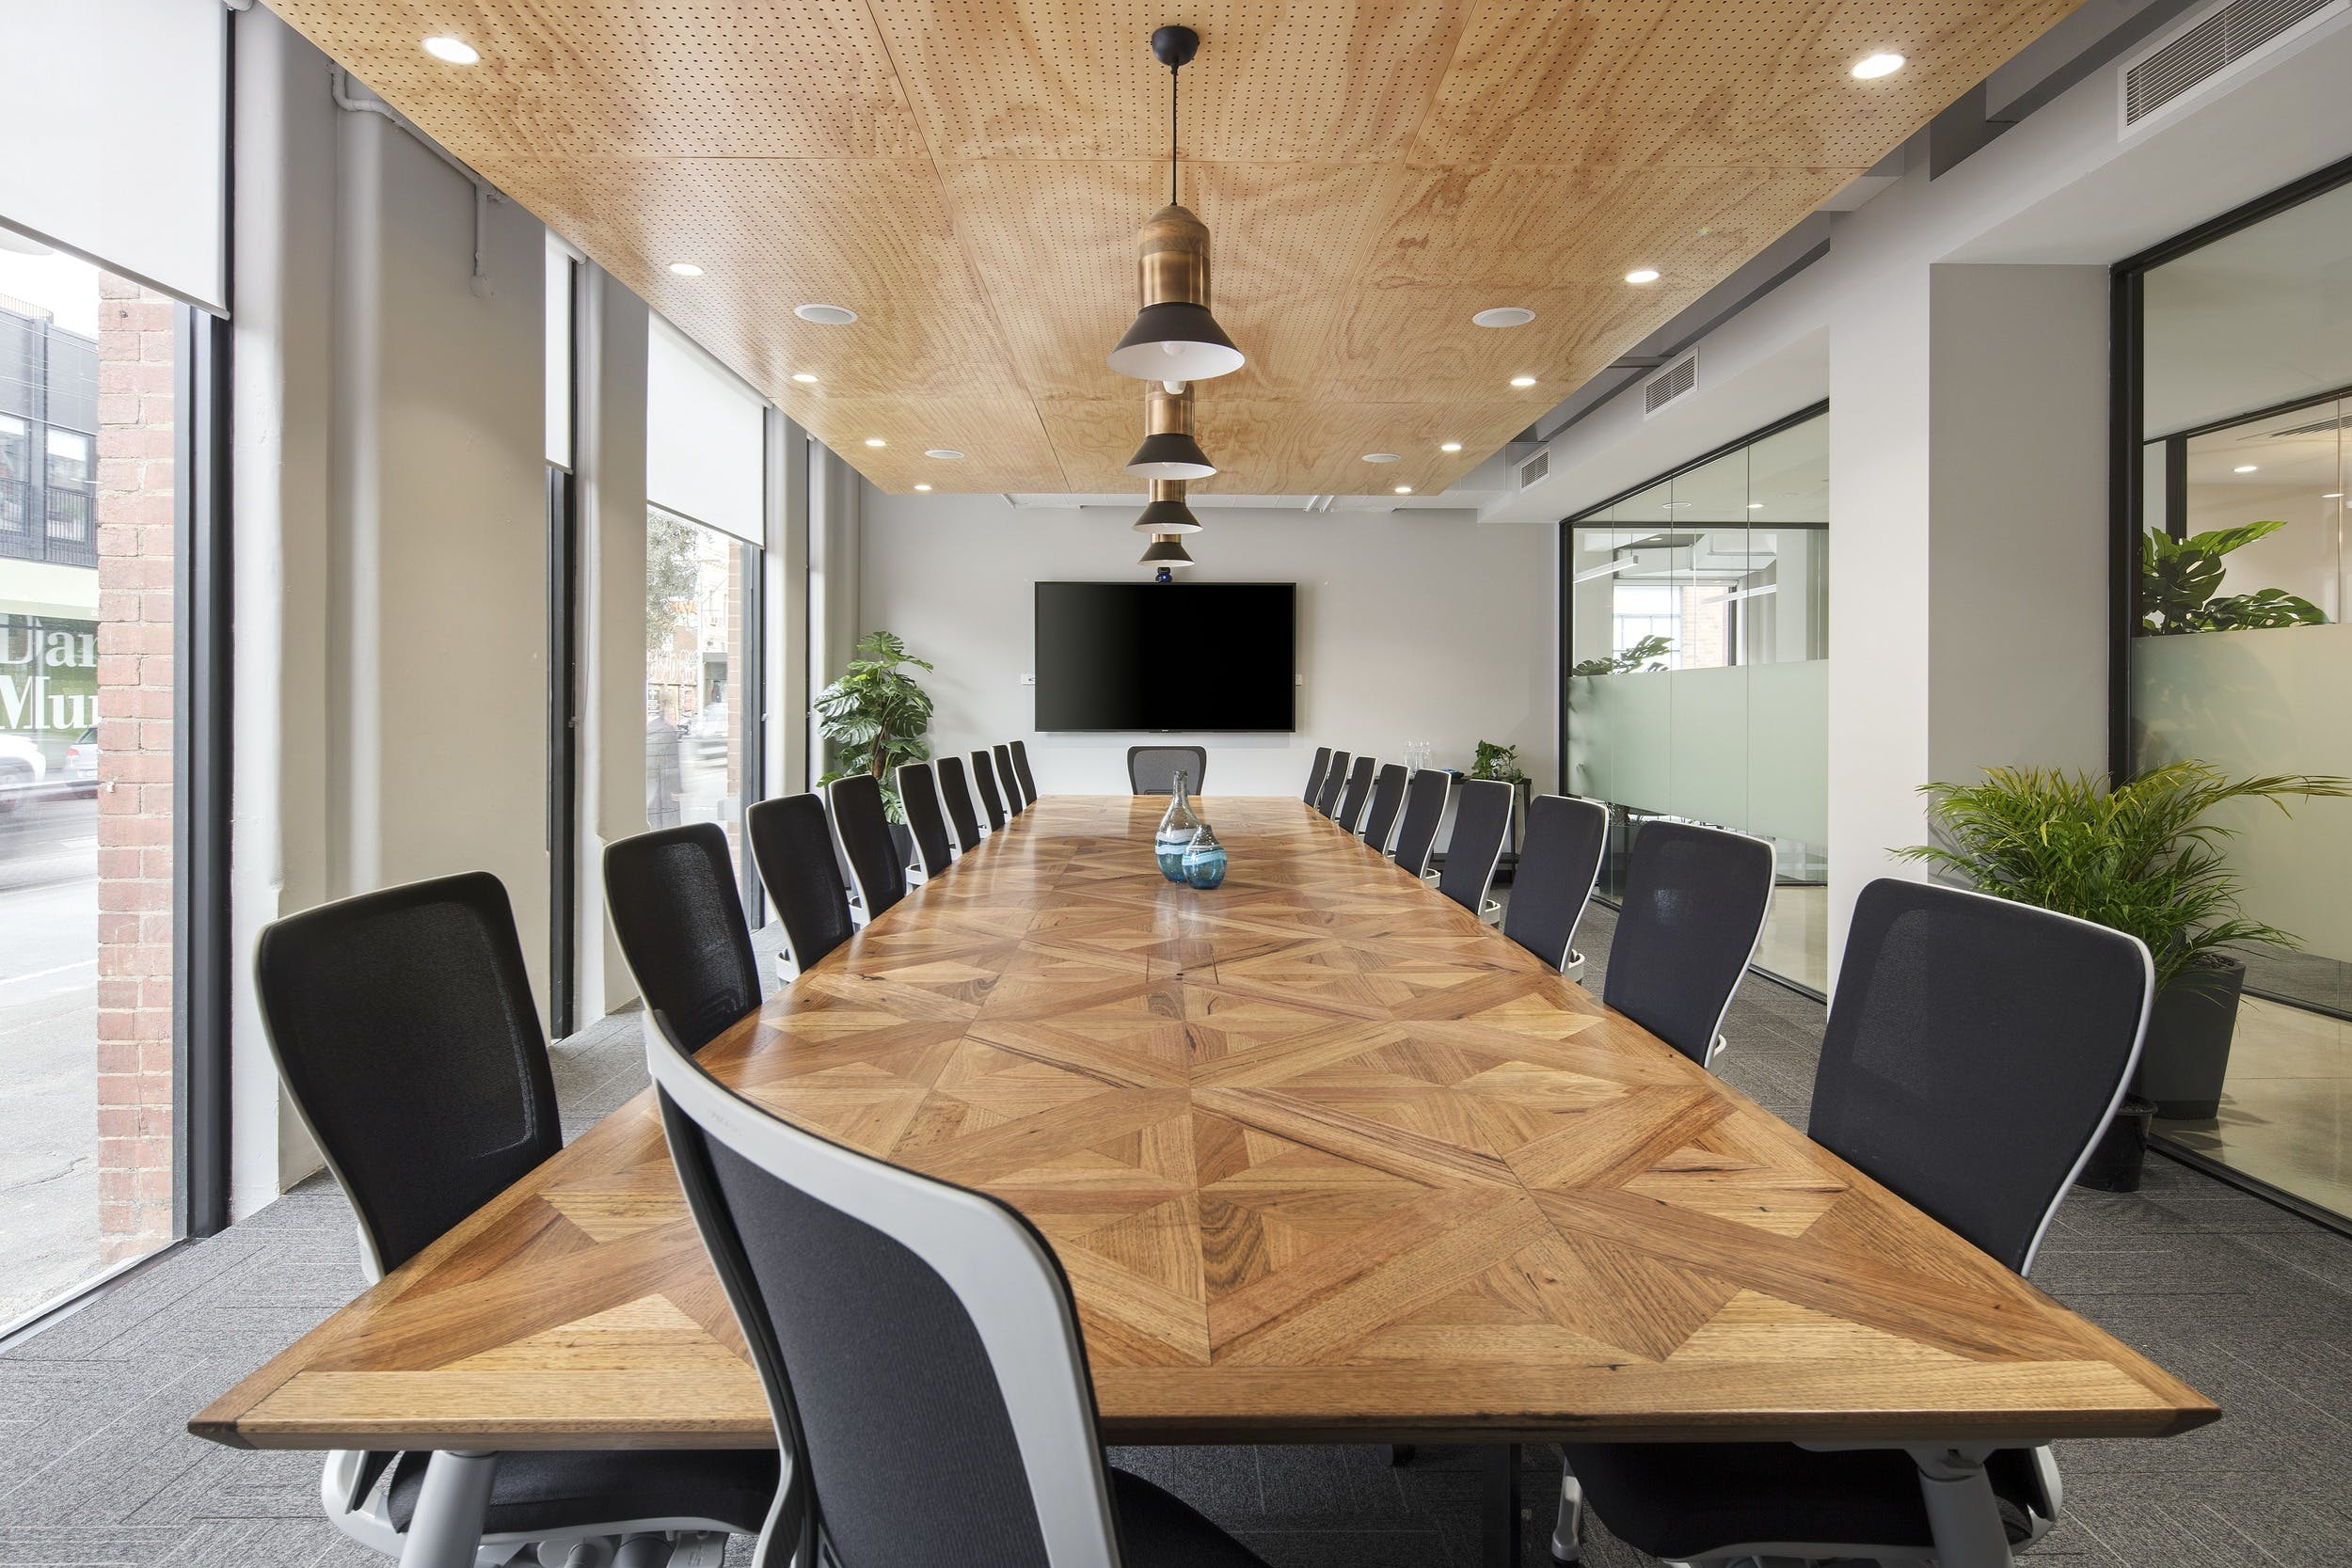 22 Person Boardroom , meeting room at United Co., image 1